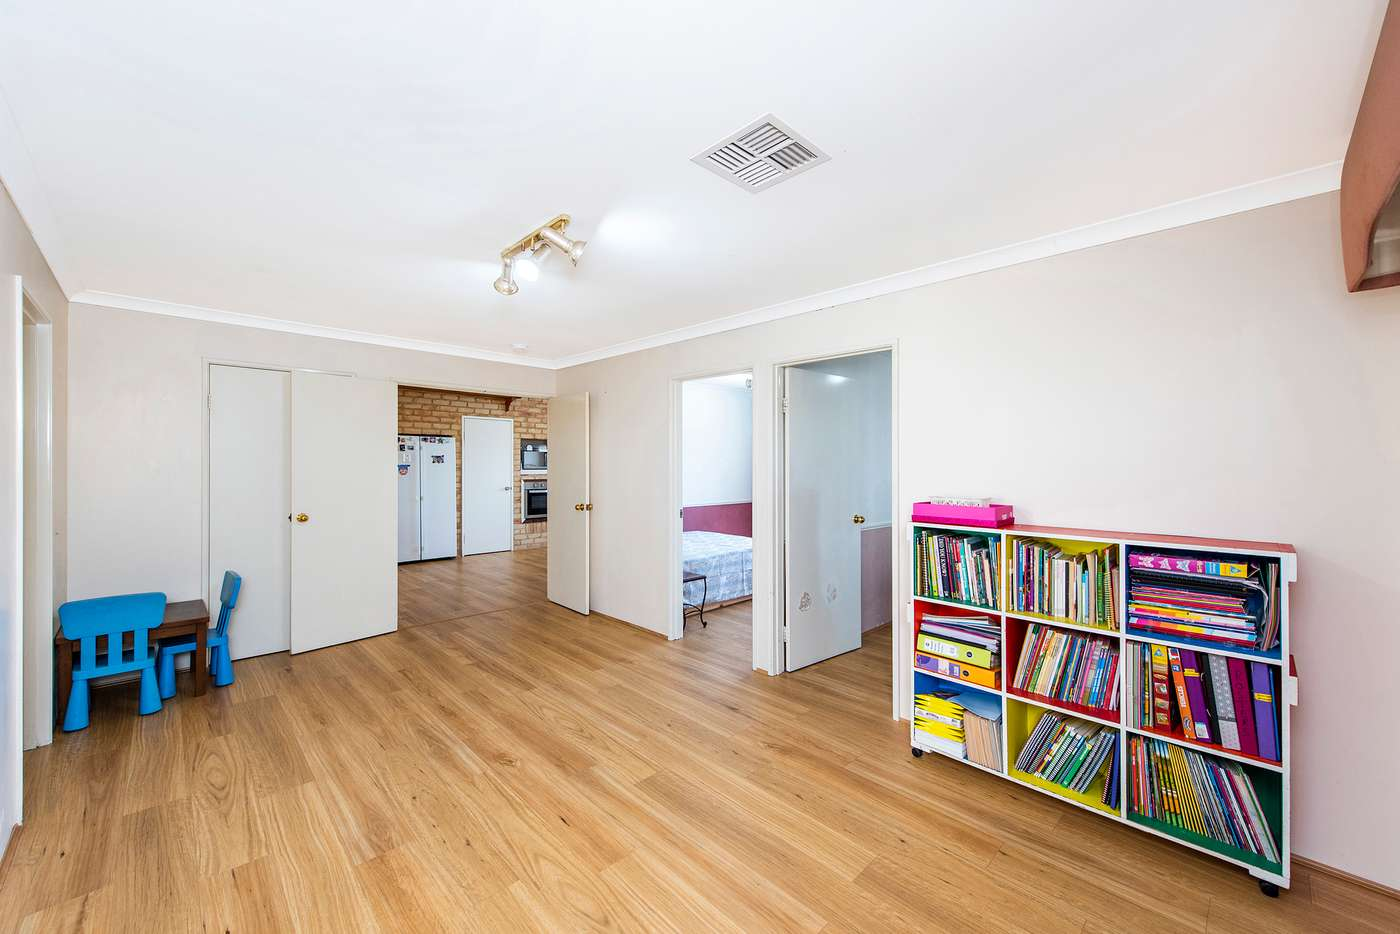 Seventh view of Homely house listing, 5 Silky Vale, Halls Head WA 6210